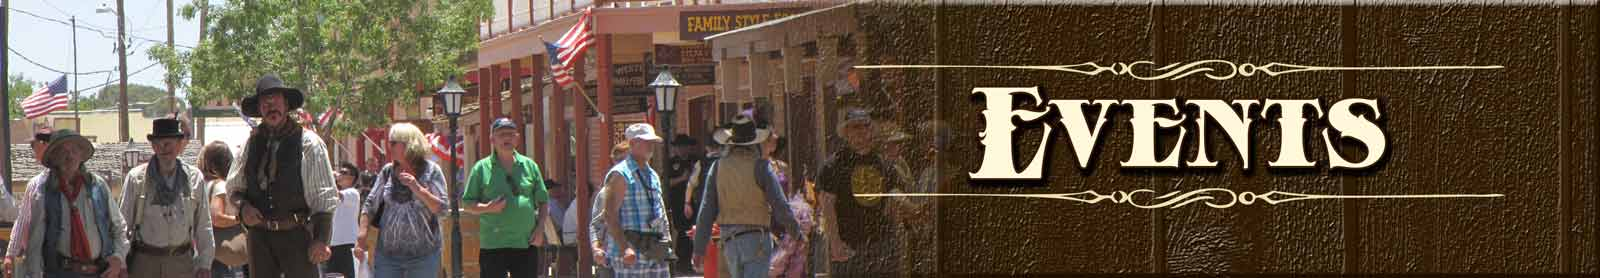 Tombstone Arizona Events